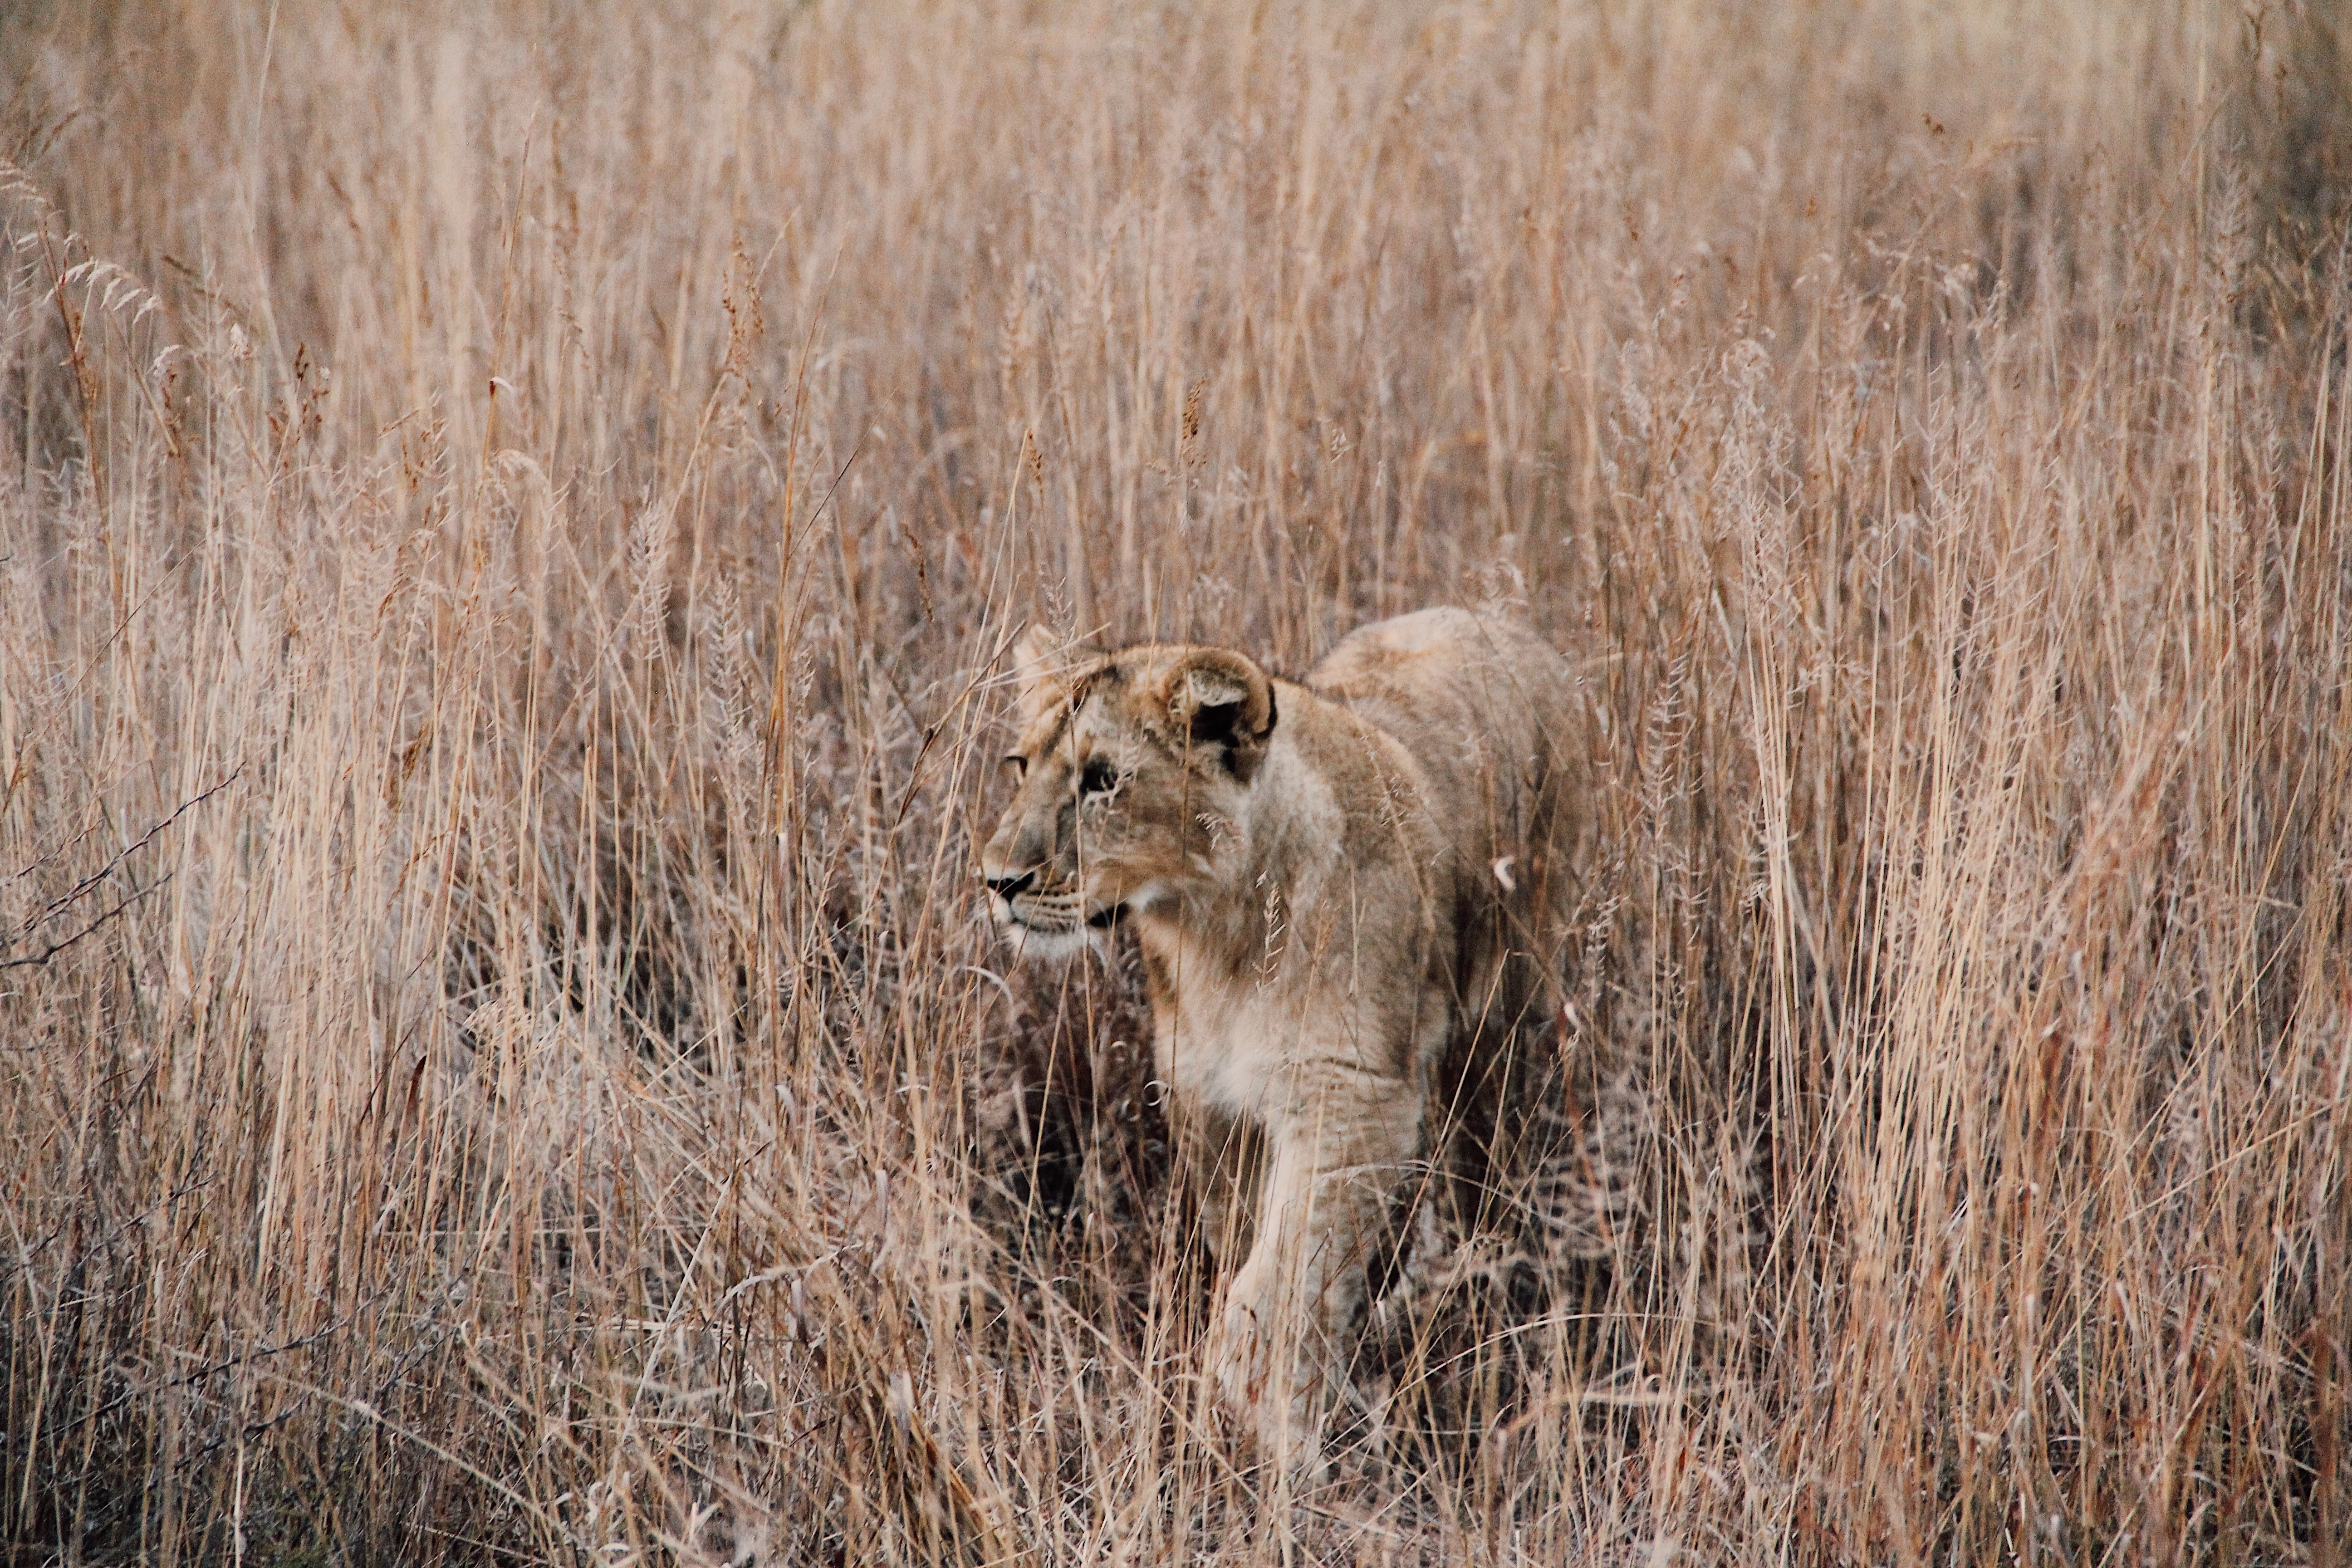 A lioness prowling in tall dry grass